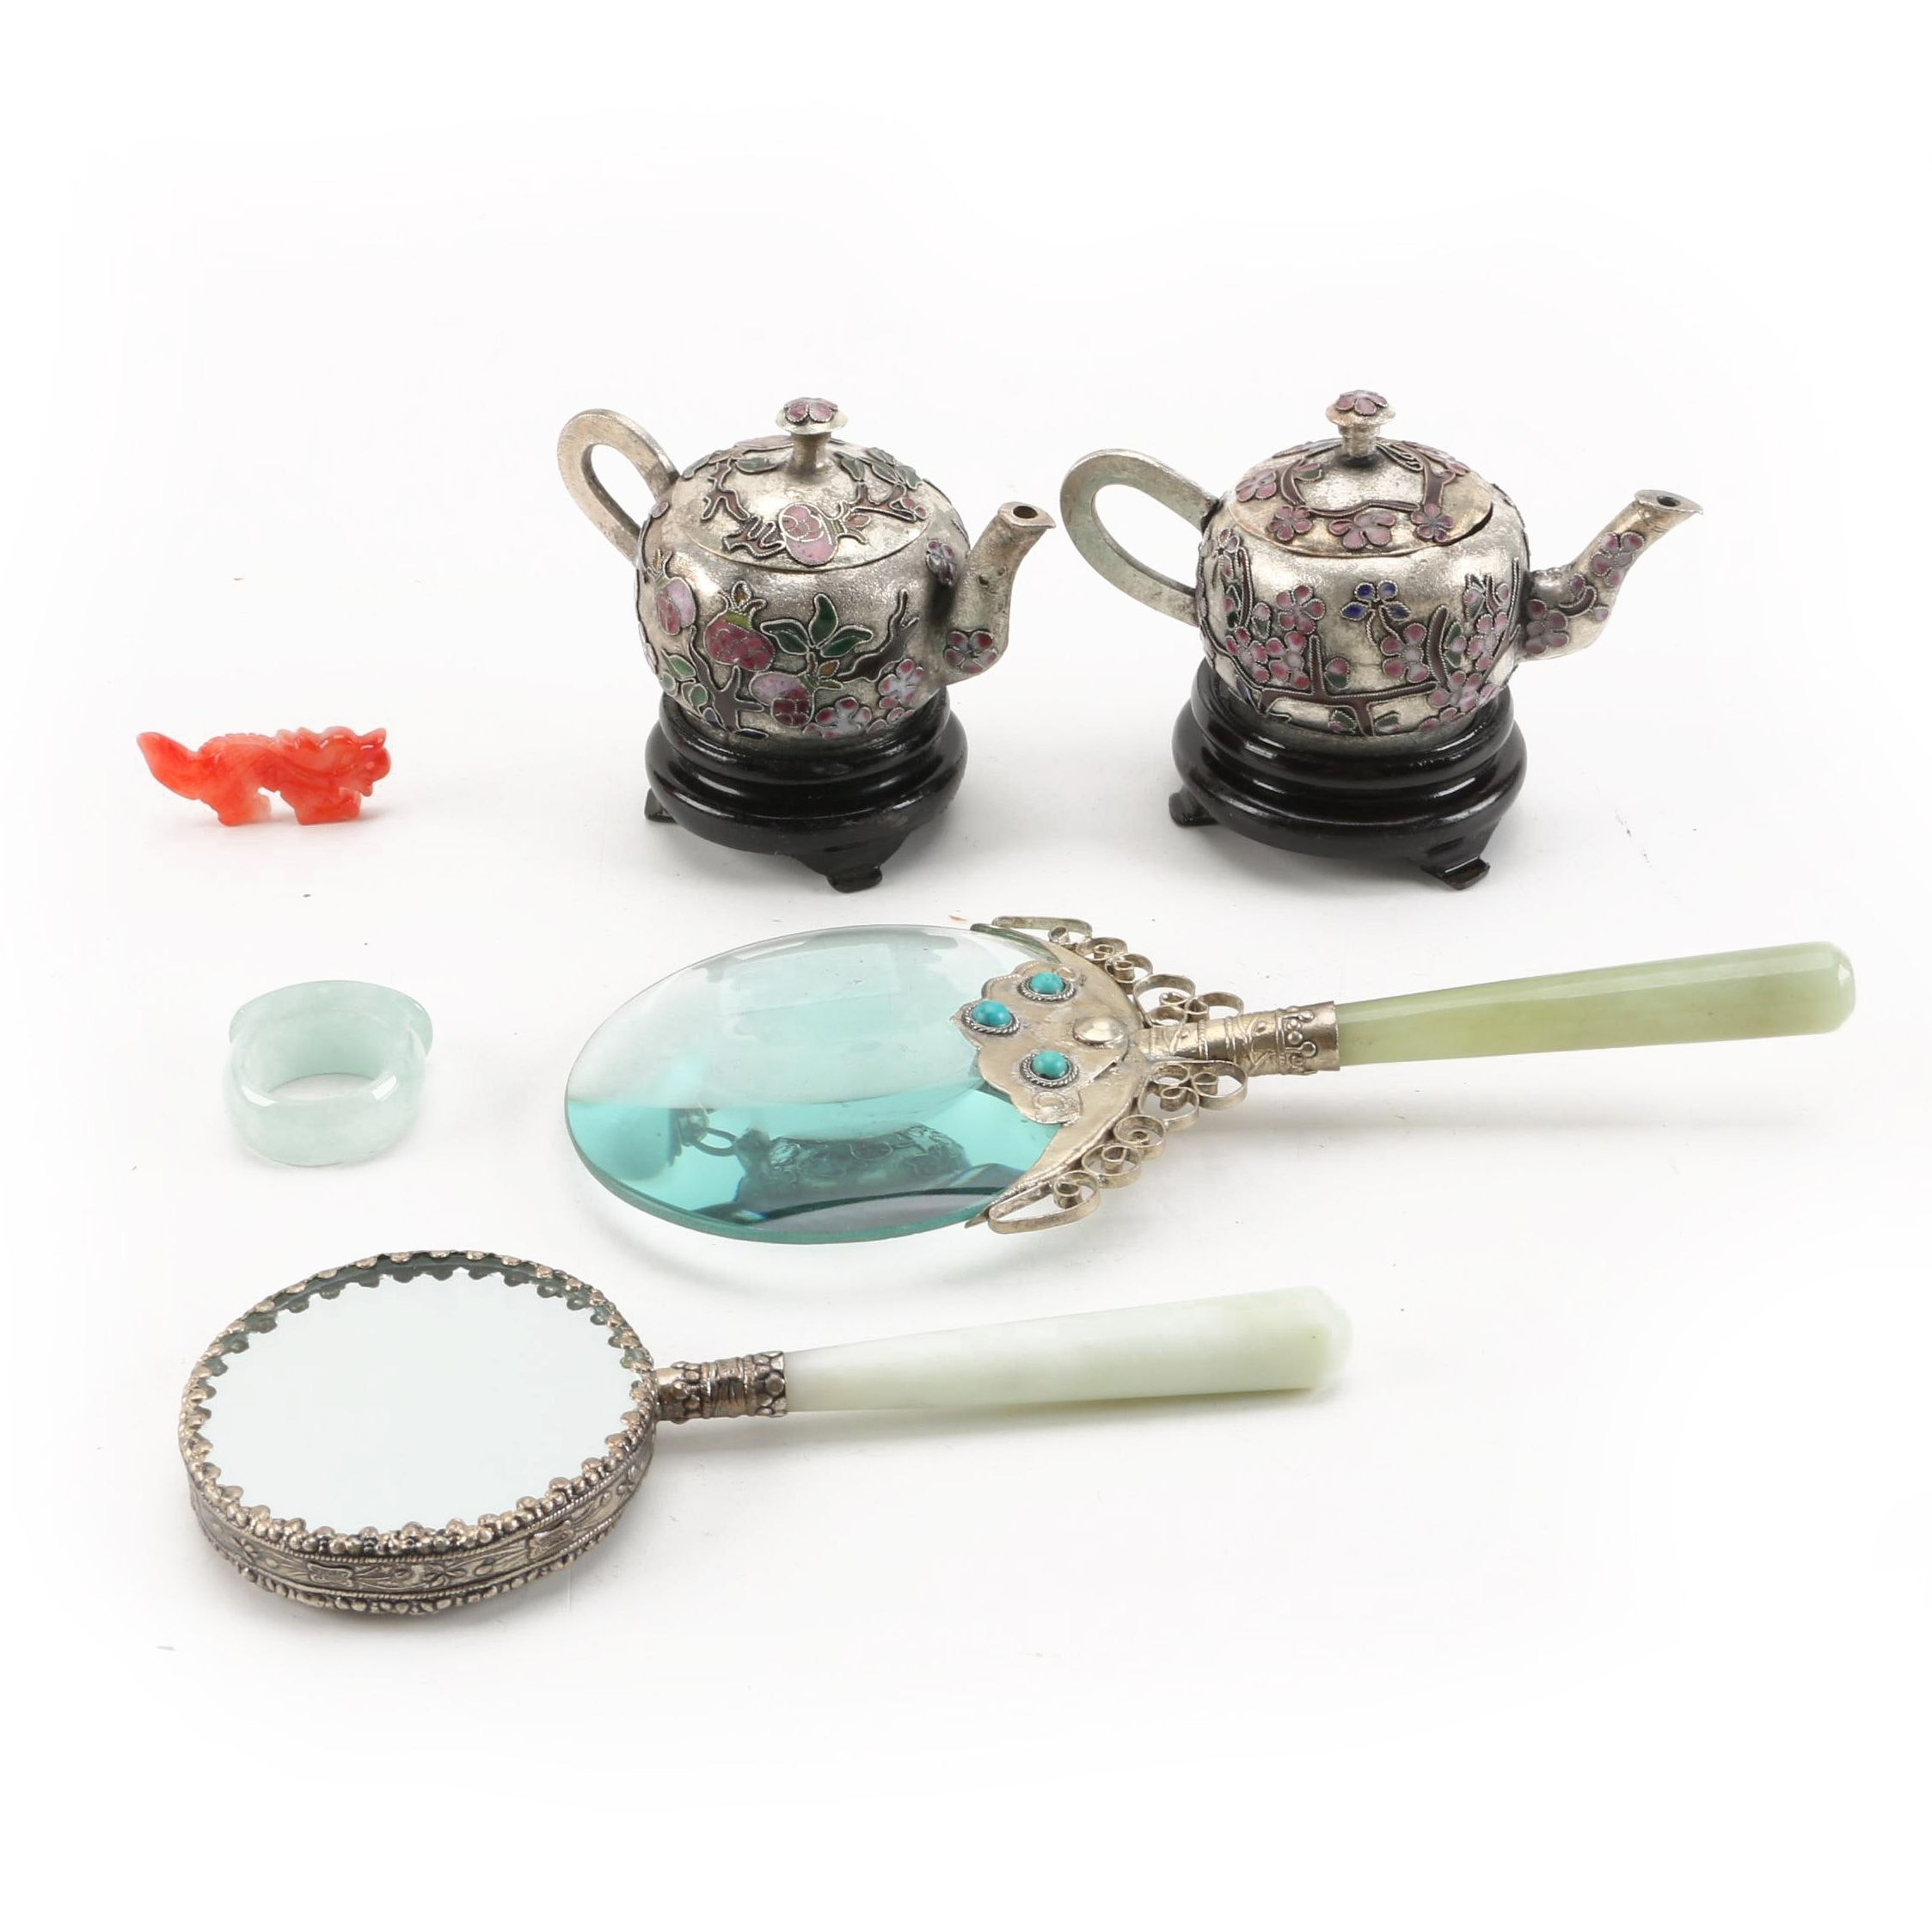 Jadeite Ring and Dyed Jadeite Figurine with Champlevé Teapots